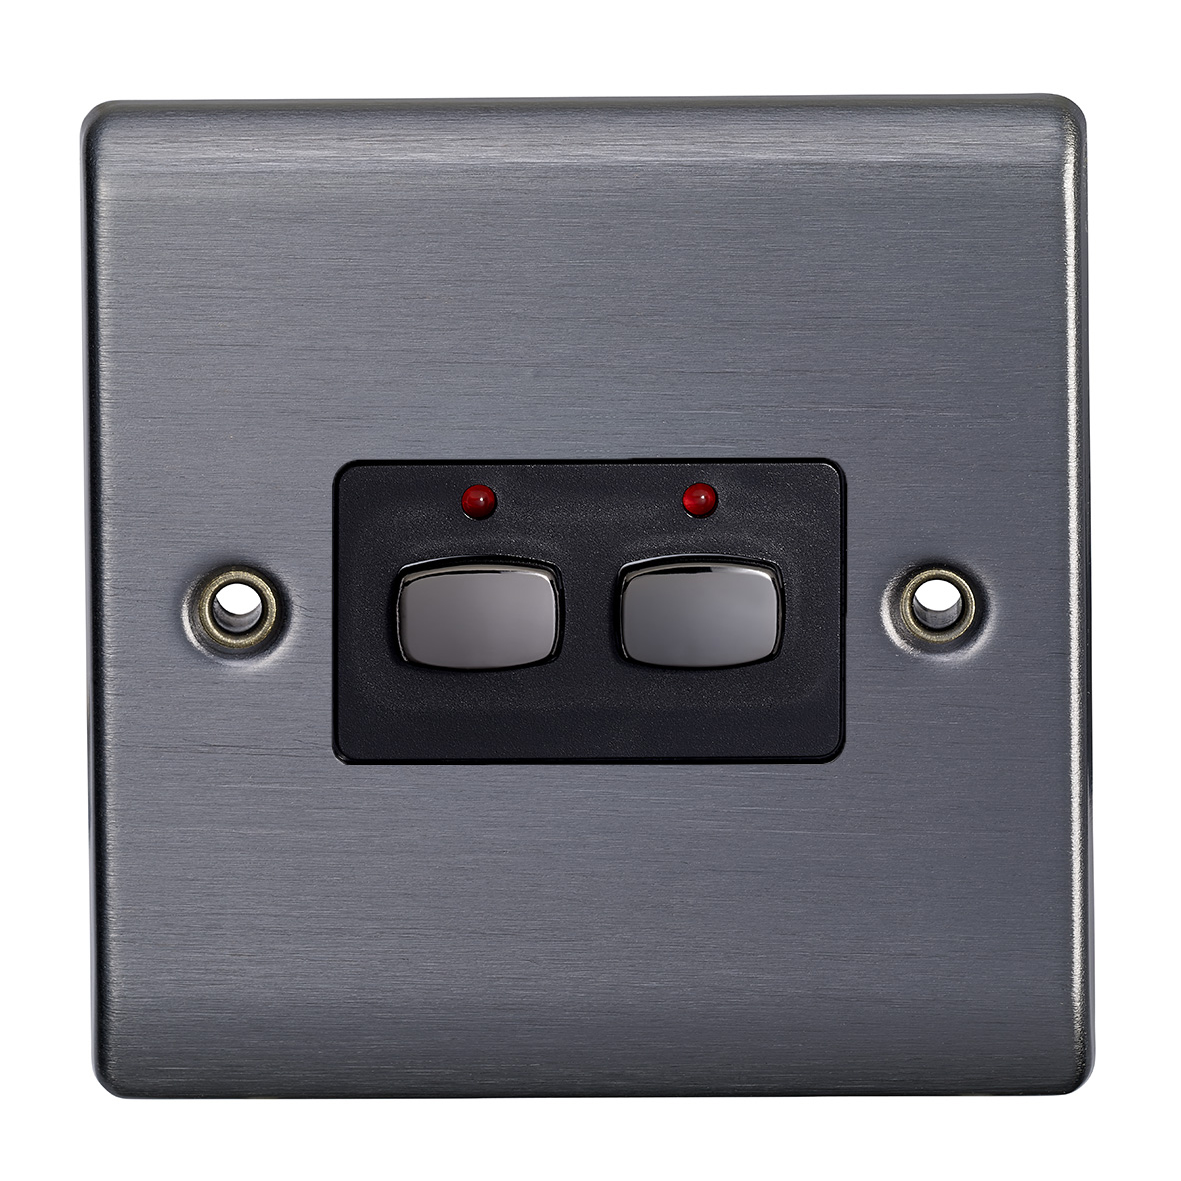 Smart 6mm two gang Light Switch Graphite